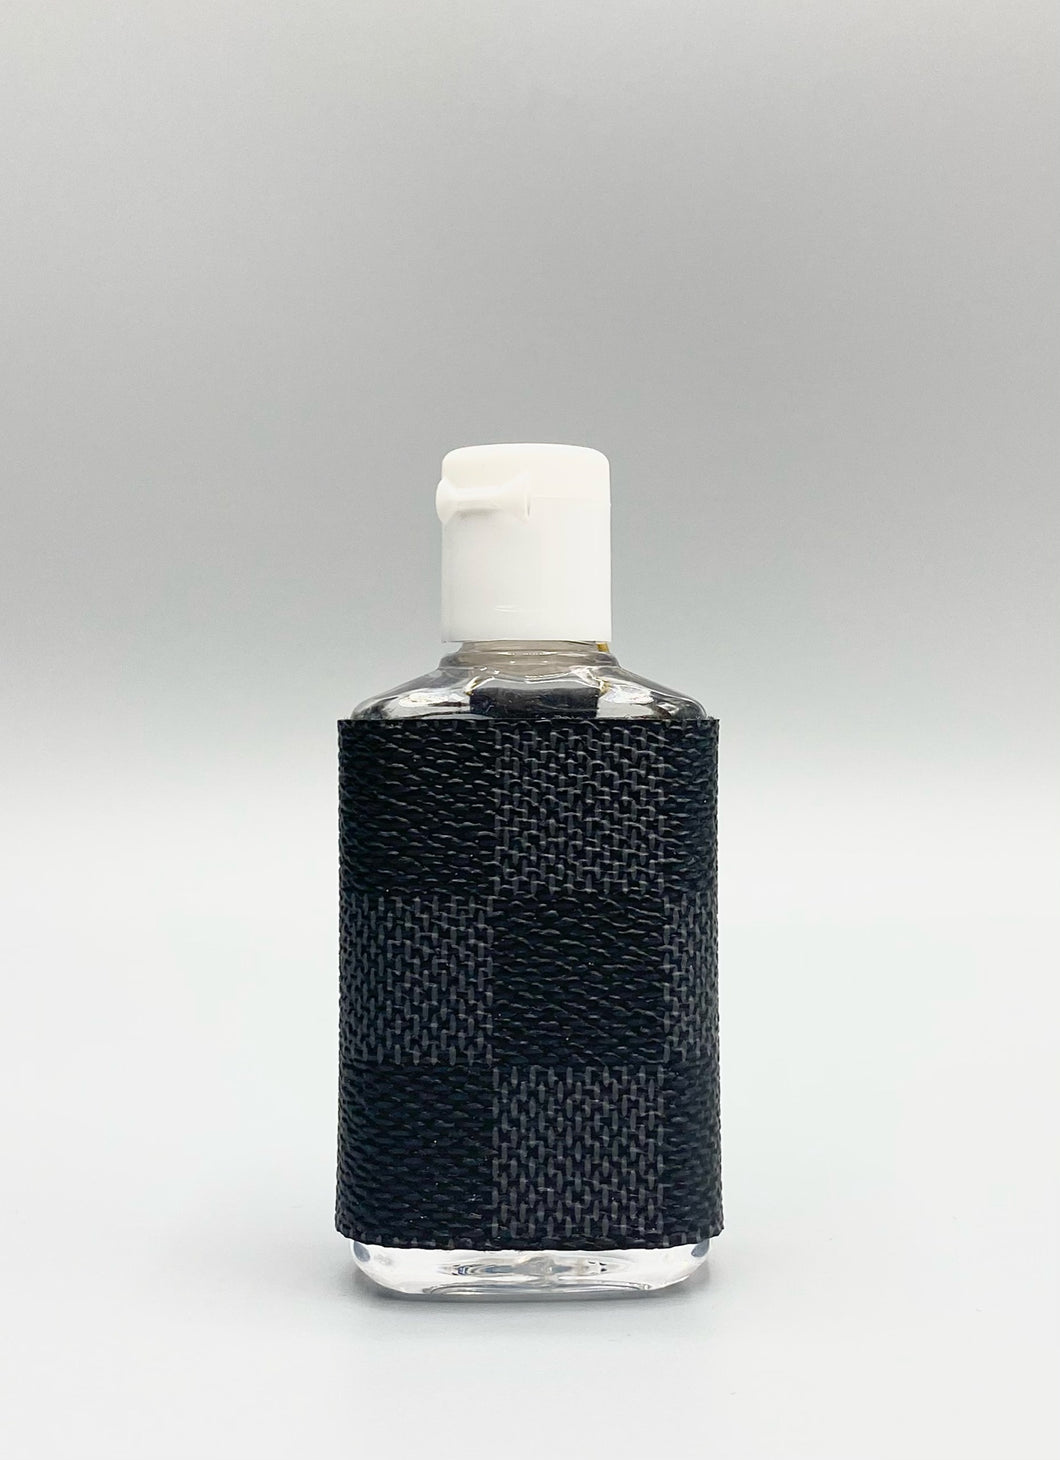 Black Damier Graphite Hand Sanitizer